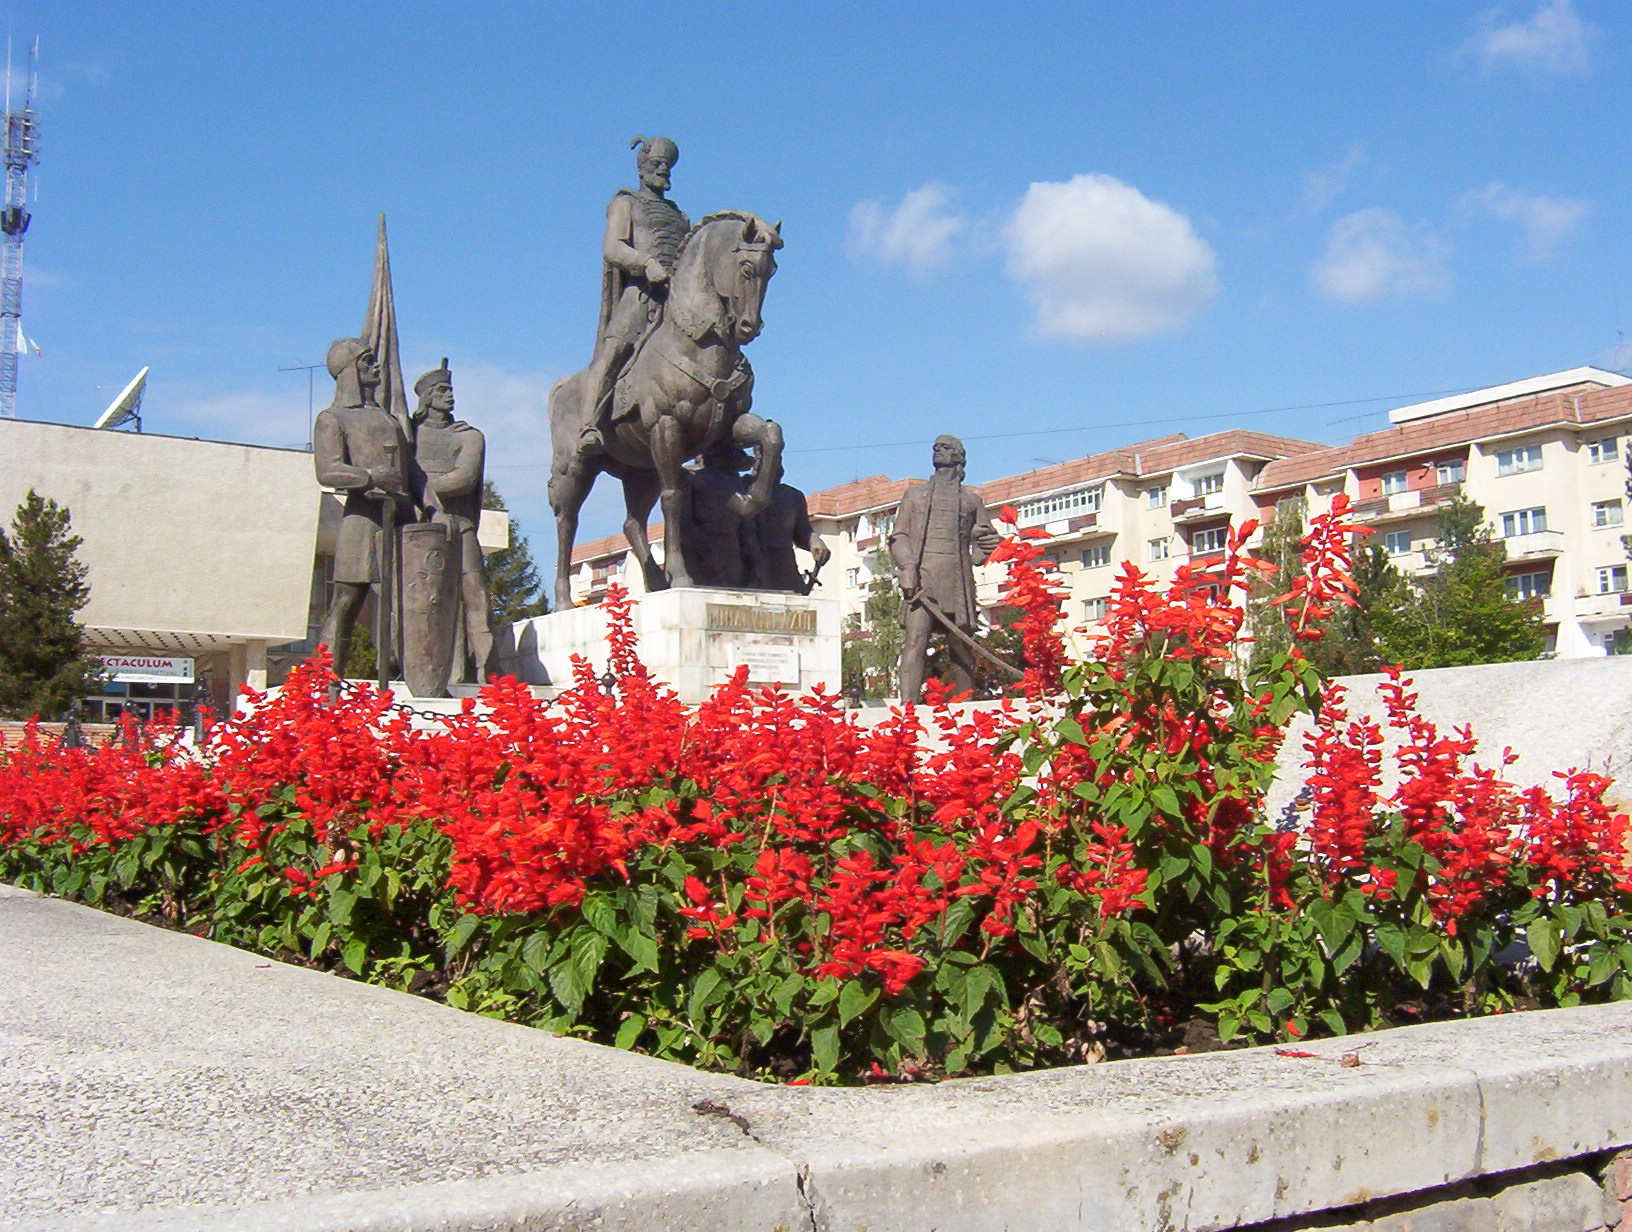 I hope there will be flowers around the monument of Hungarian leaders on the pavilion in front of the House of Culture in Sfantu Gheorghe when I arrive.